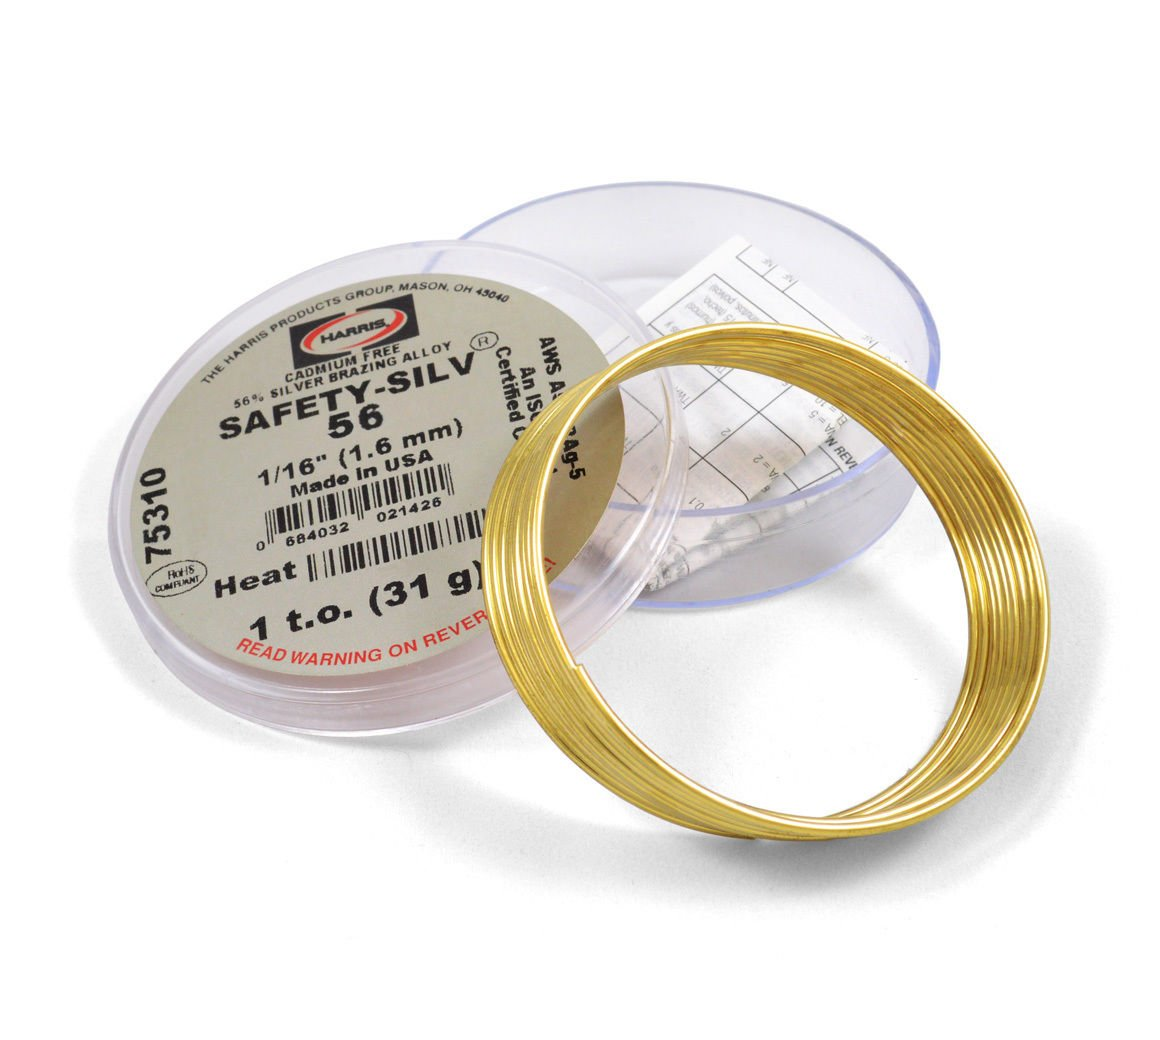 Harris Safety Silv 56% 1 16 Silver Solder Brazing Alloy 1 Troy Ounce 75310 5631